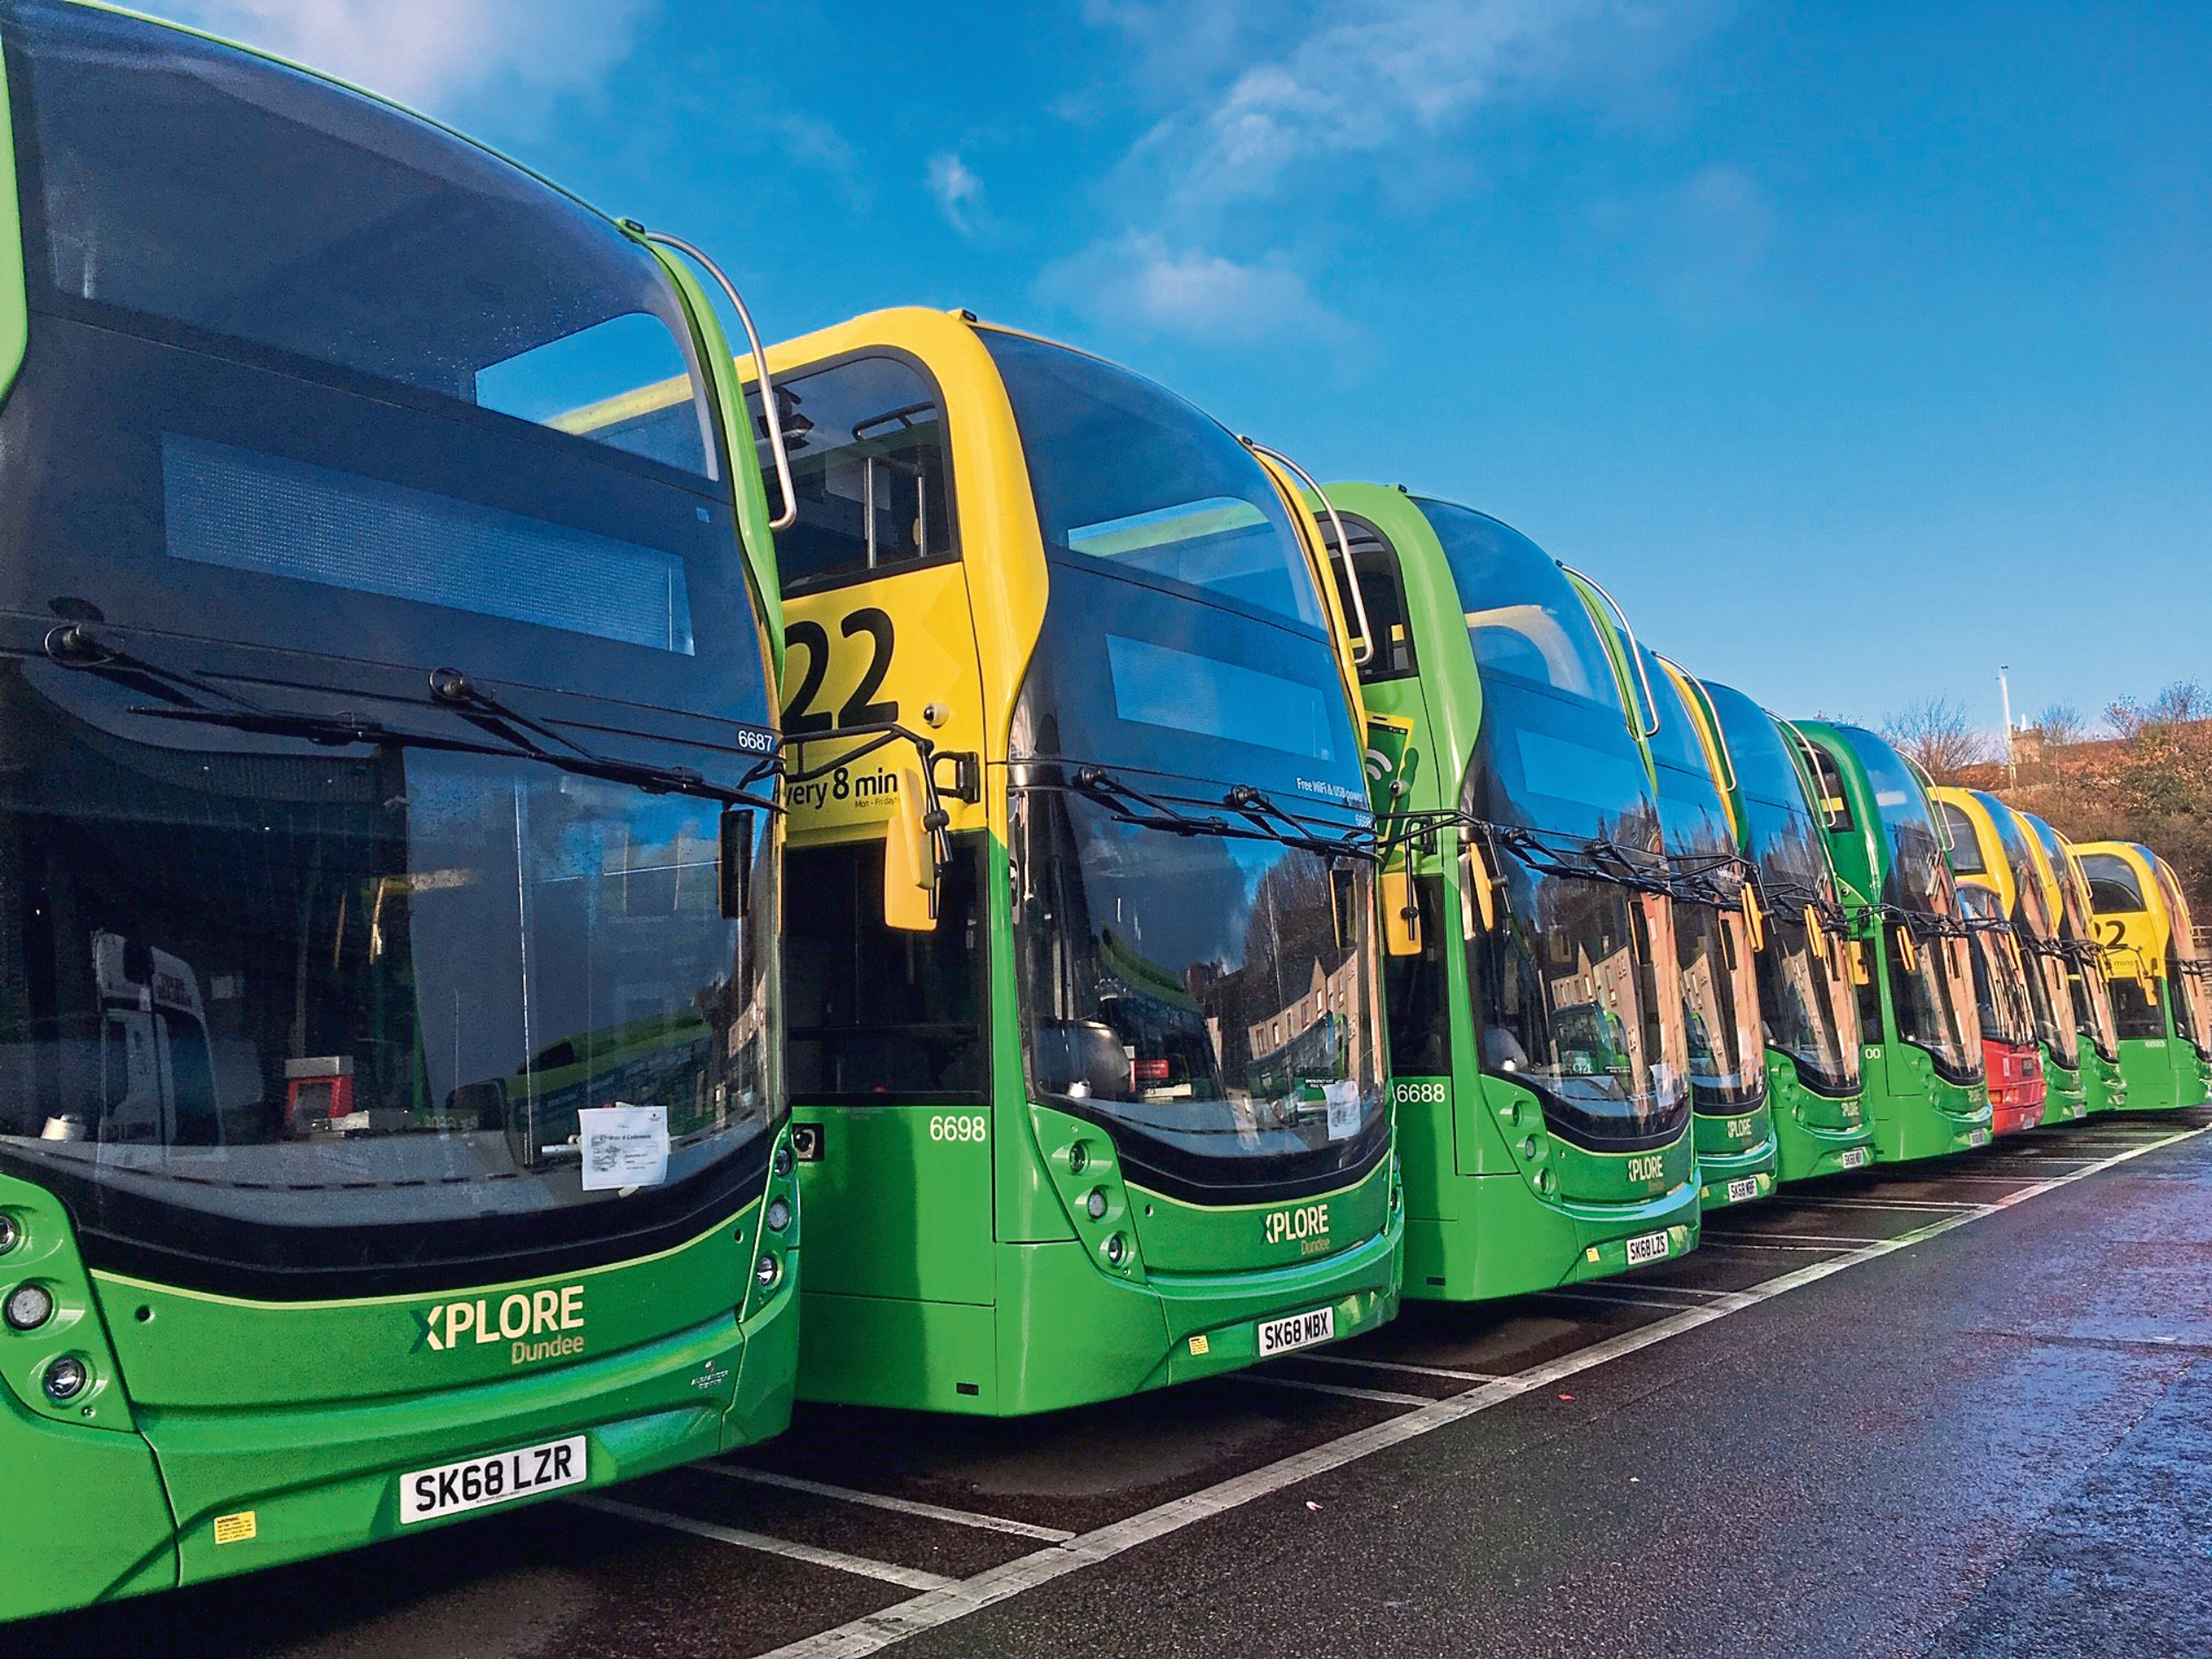 Contactless payments will initially be available on Xplore Dundee's new 22 buses